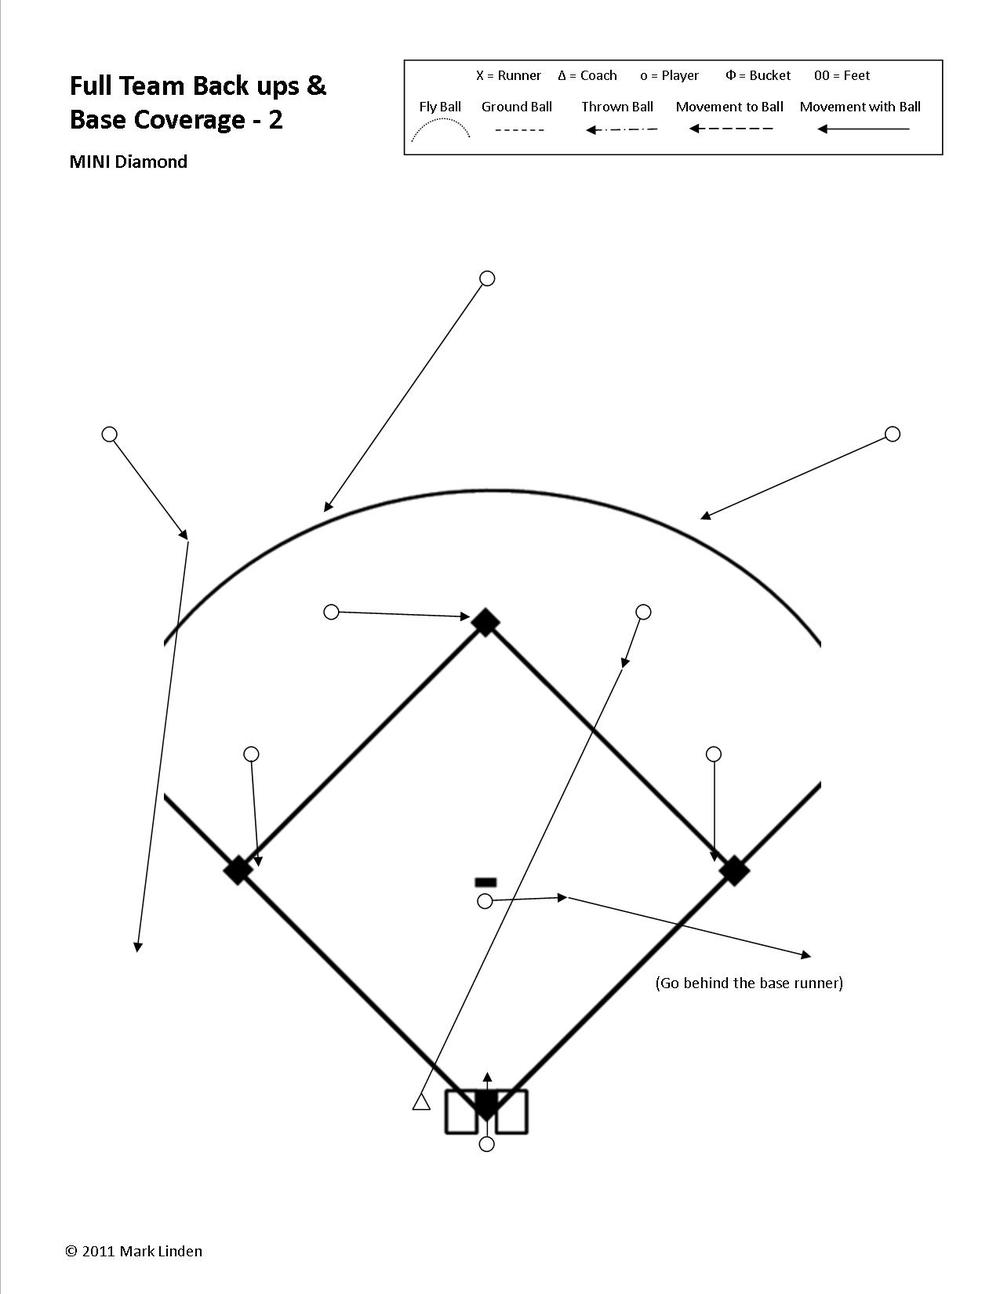 "In this example we have a ball hit to the Second Baseman.  -->  The rule for the other three infielders is to cover a base.    -->  The rule for the CF and LF is that because they are not playing the ball they are backing up a base.   -->  The rule for the Pitcher is ""Always move towards the ball"".  In this case the Pitcher does not field the ball so they continue running in a straight line towards first base.  They see the base is covered, so go to their next responsibility of  b acking-up the base.  They need to be sure to go behind the base runner when crossing the base line.  -->  The rule for the RIGHT FIELDER, because the ball is hit to an infielder in front of them, is to go for the  b all.  Not until they see the ball is caught by the fielder in front of them does their responsibility change to moving to back up a throw.  In this case getting to the initial backing-up position is not a concern because the Pitcher is backing up third base.  However, the Right Fielder does visually follow the ball and prepares for the possibility that the ball may be moved around the infield and they may be needed, later in the play, to back up a throw to second or first base."